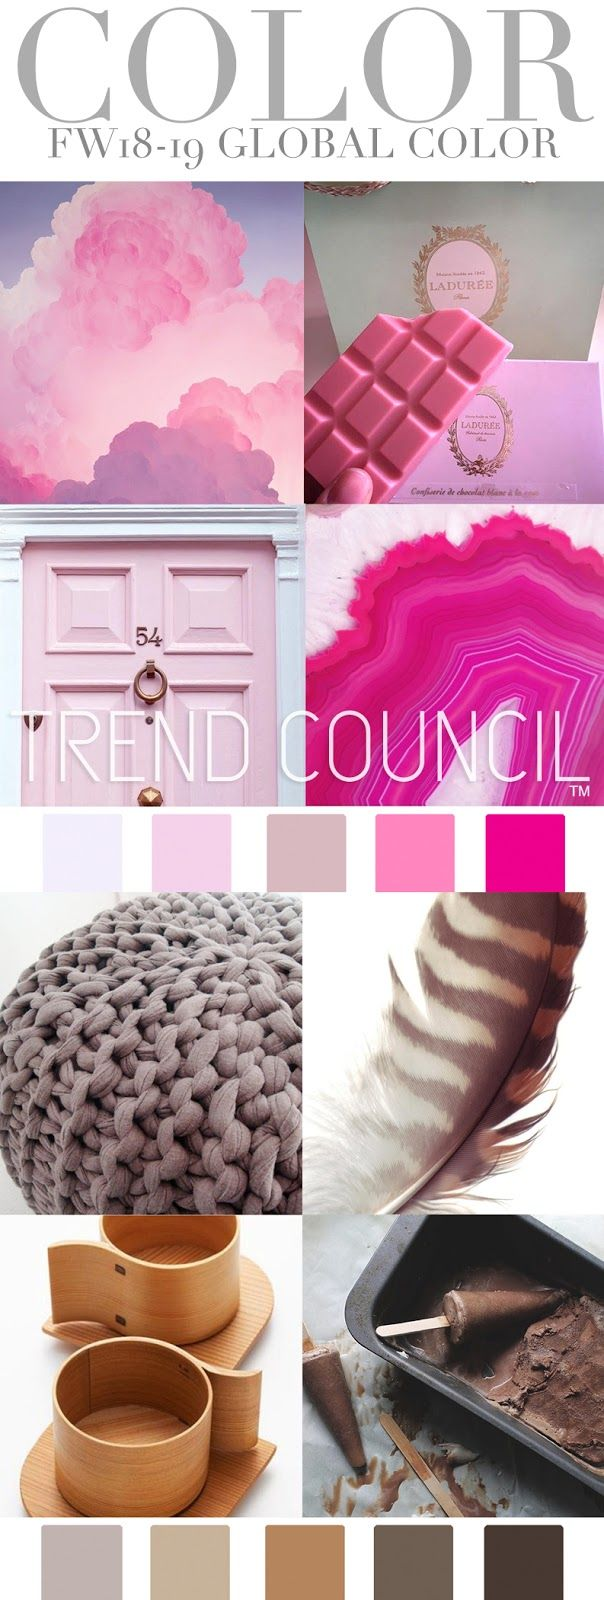 #2018trends #AW1819 #ColourTrends | Trend Council is a fashion trend forecasting company who delivers expert analysis and design inspirations. Their team provides a great wealth of consulting services for all your company's design needs